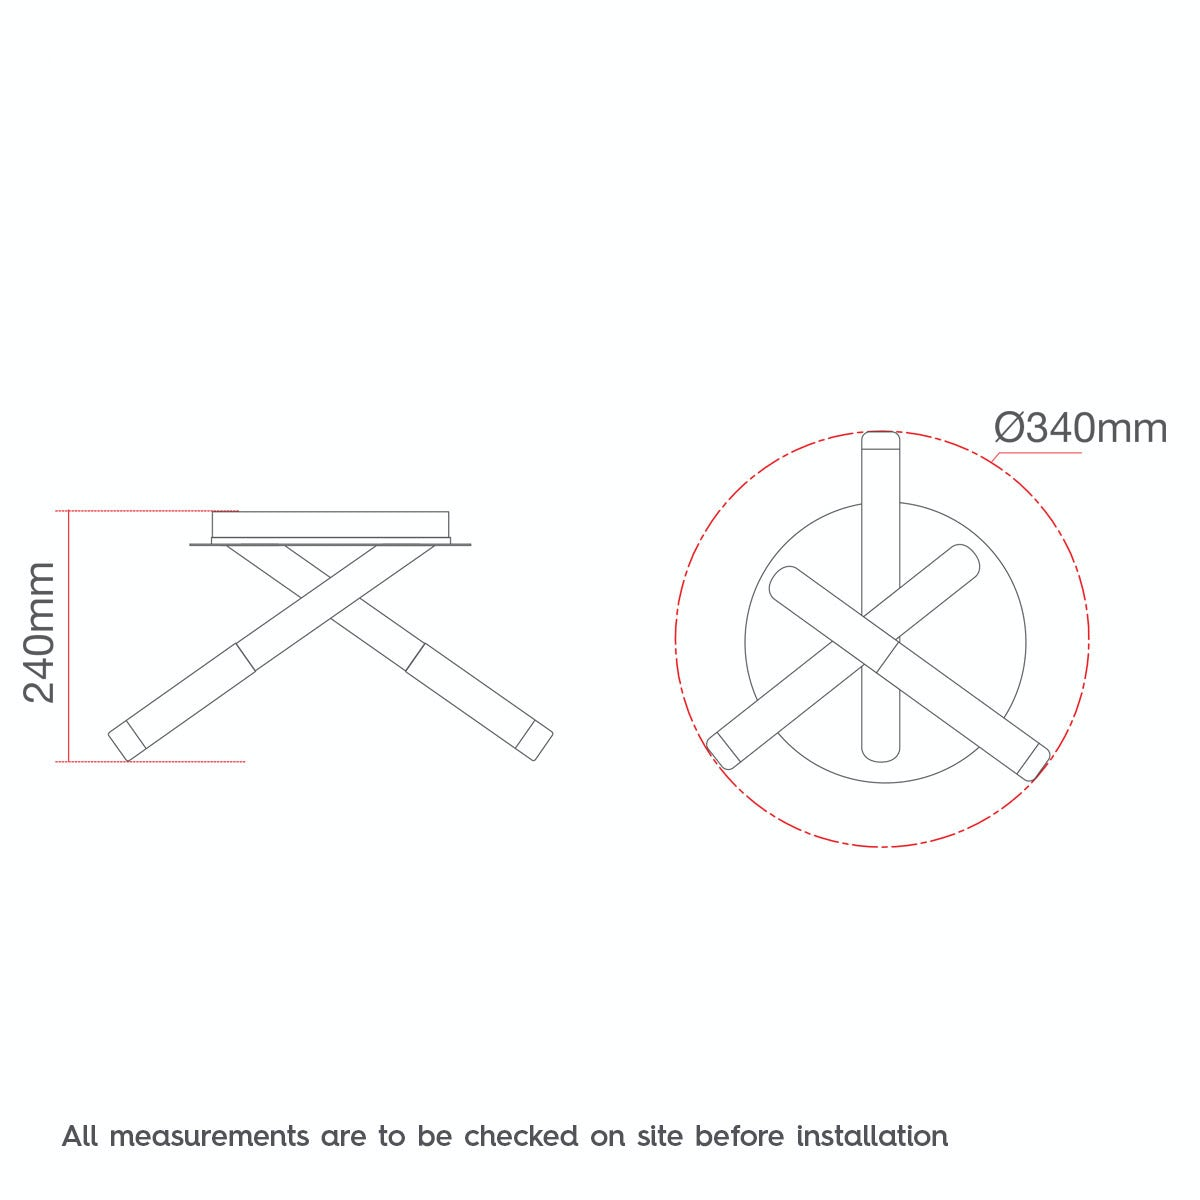 Dimensions for Forum Valo 3 light bathroom ceiling light